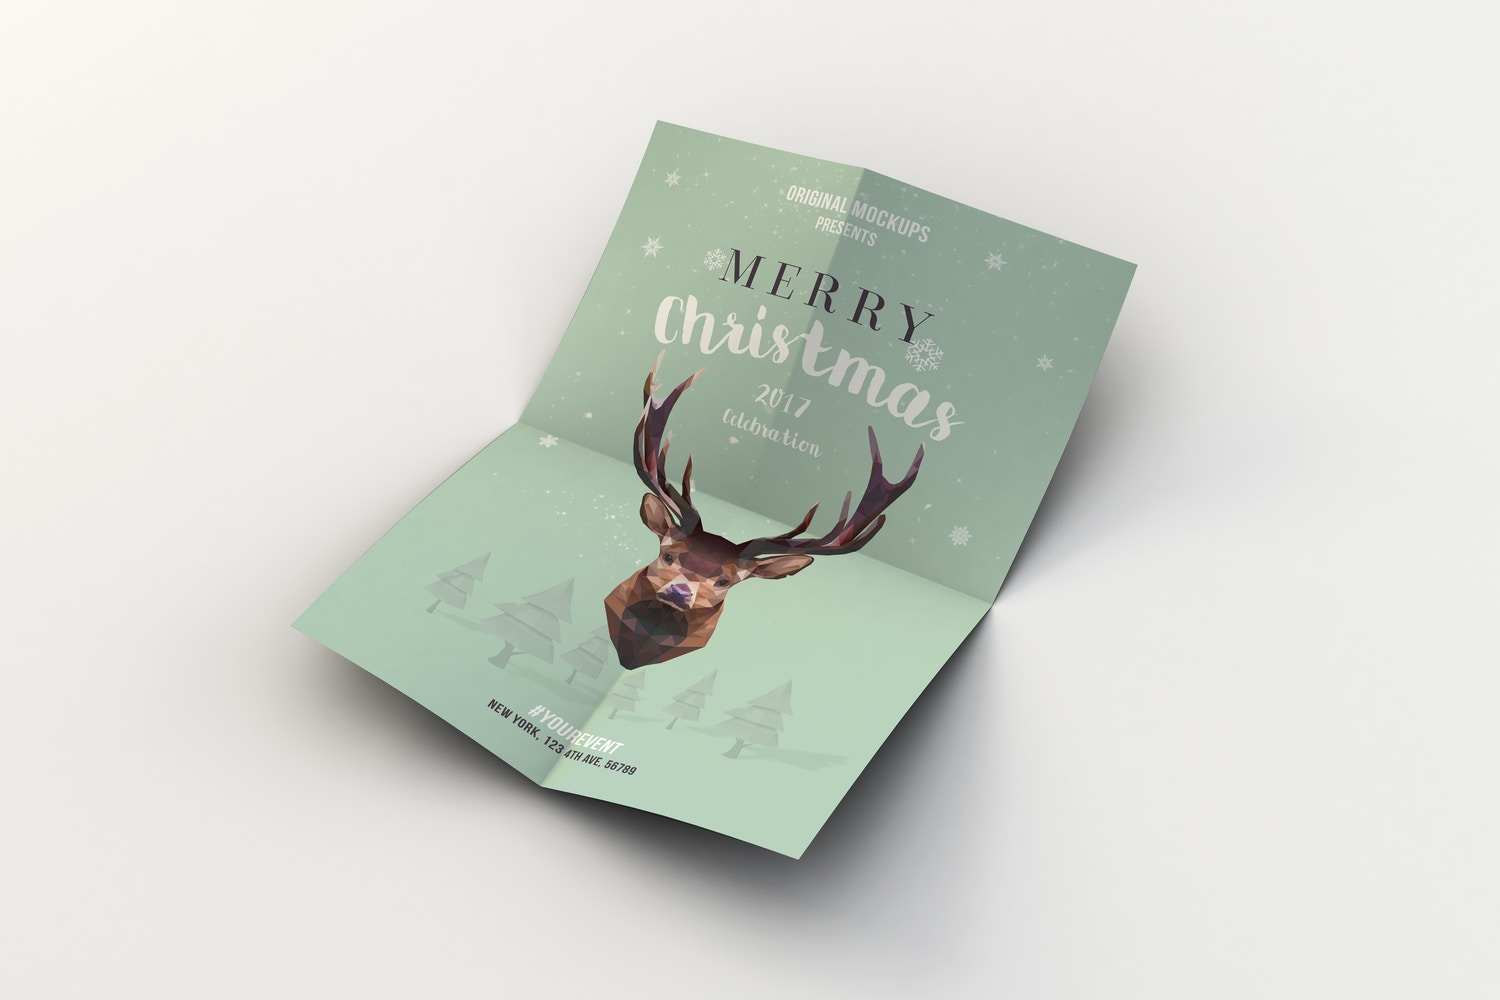 Merry Christmas Flyer - Poster 03